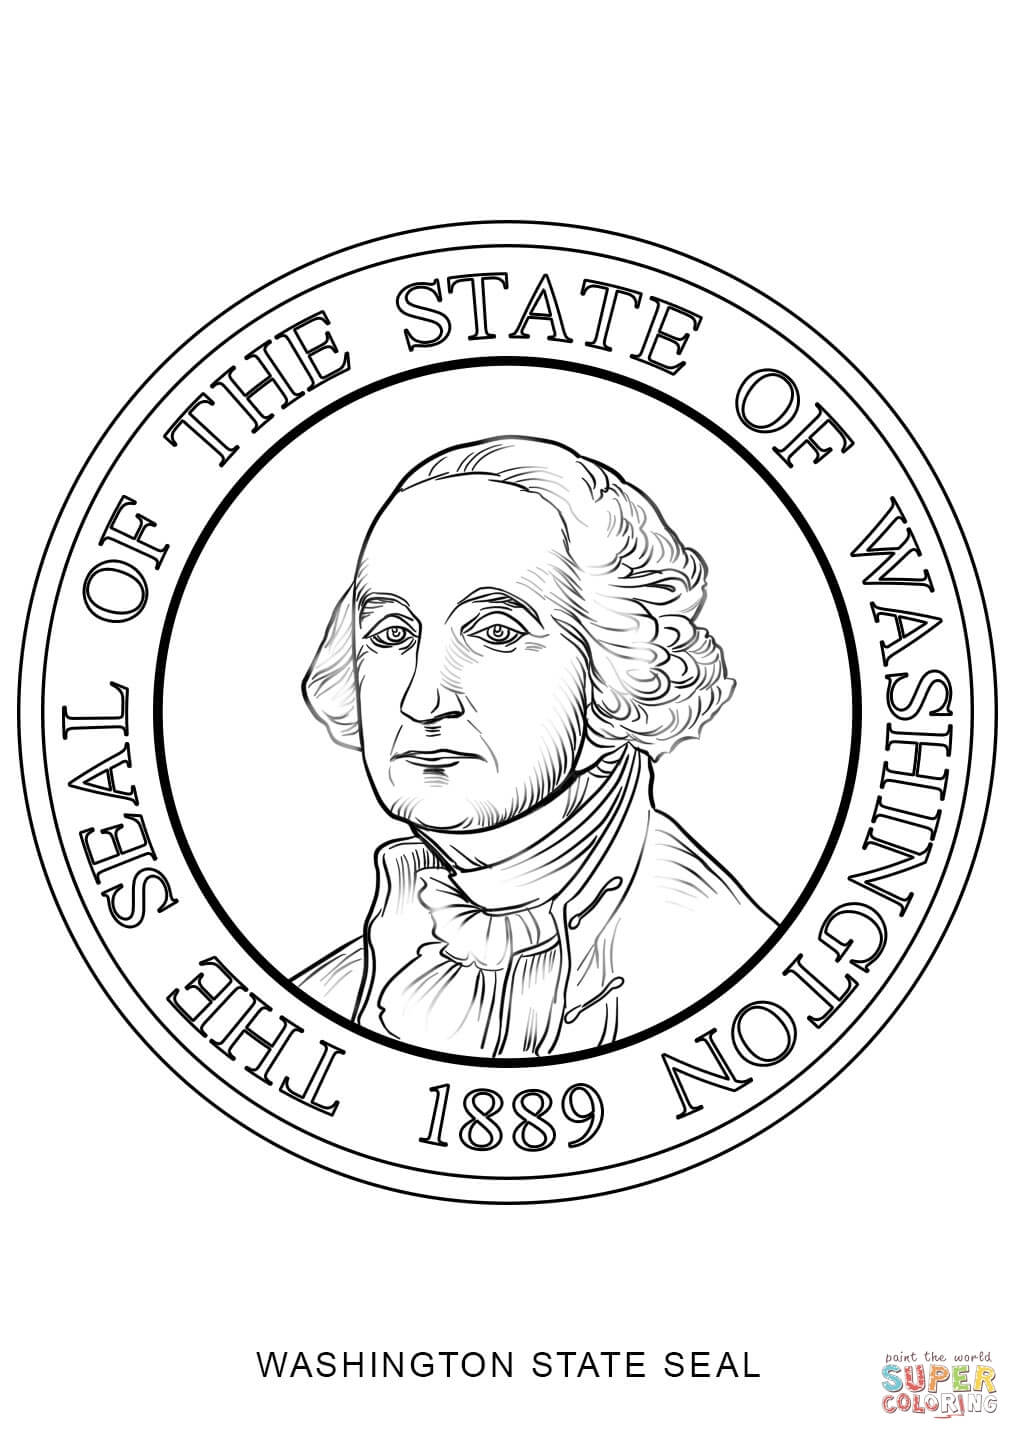 1020x1440 Washington State Seal Coloring Page Free Printable Coloring Pages